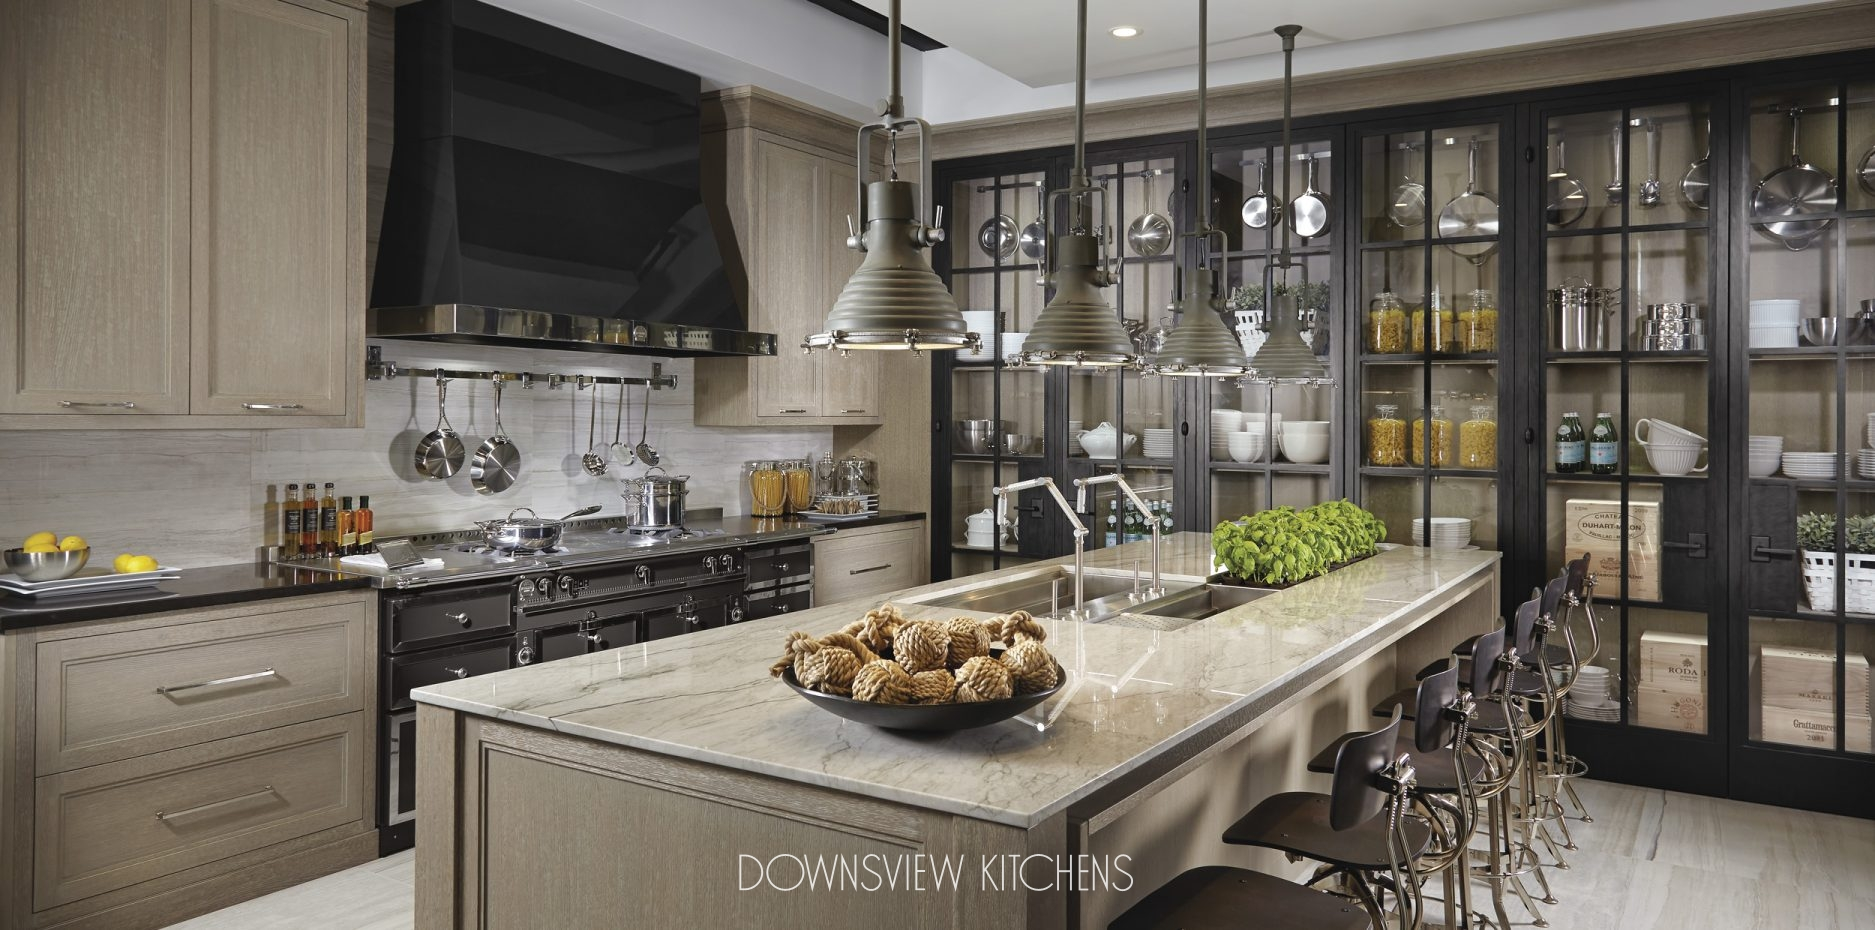 INDUSTRIAL CHIC - Downsview Kitchens and Fine Custom